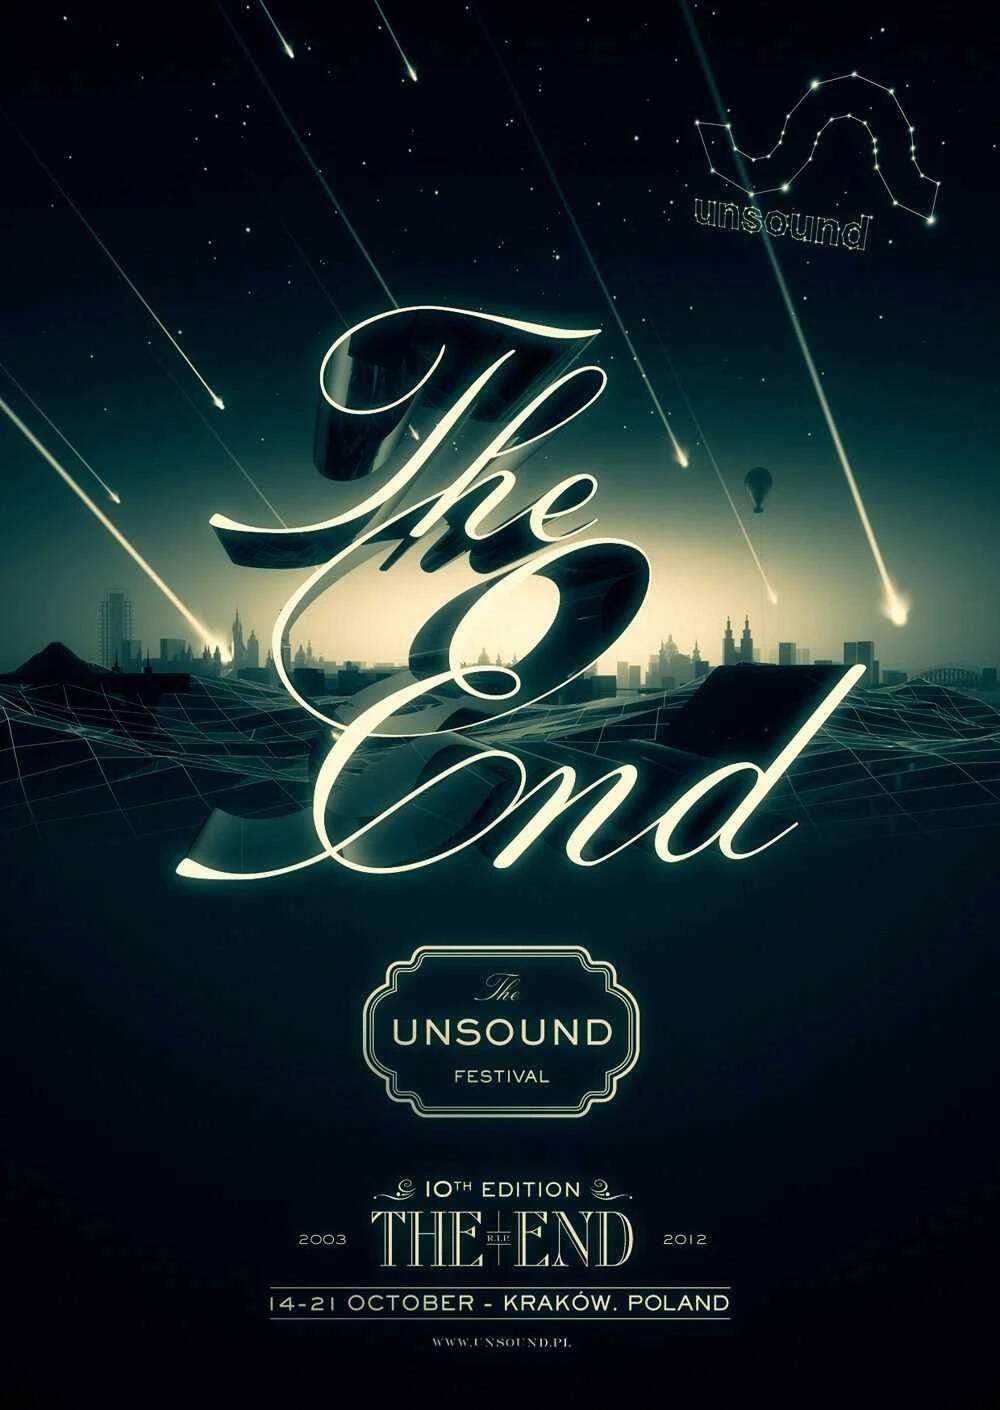 Unsound Kraków 2012: The End